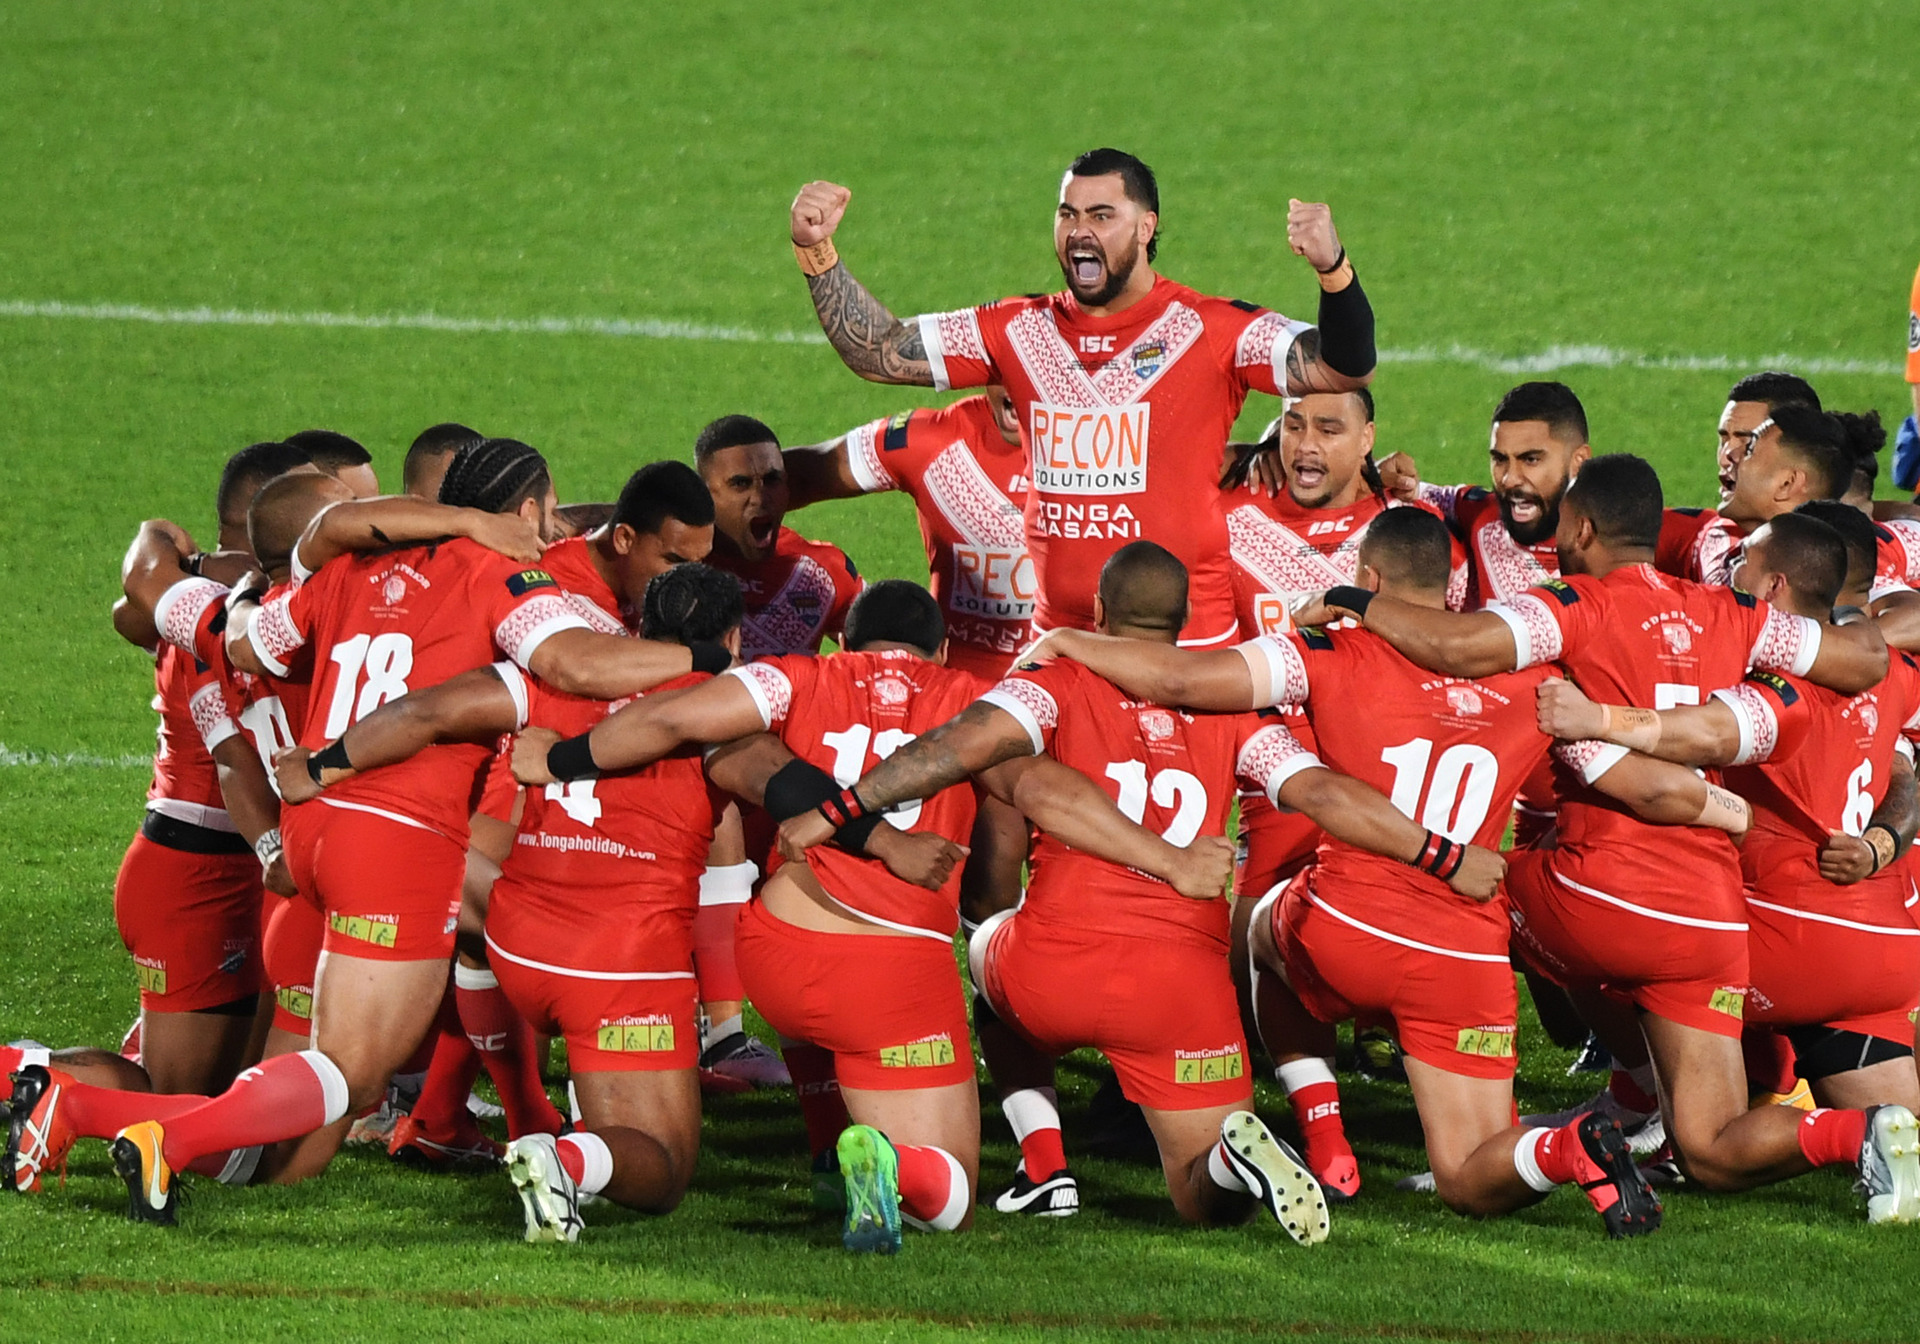 Rugby league: Andrew Fifita to miss Mate Ma'a Tonga test against Kiwis due to suspension